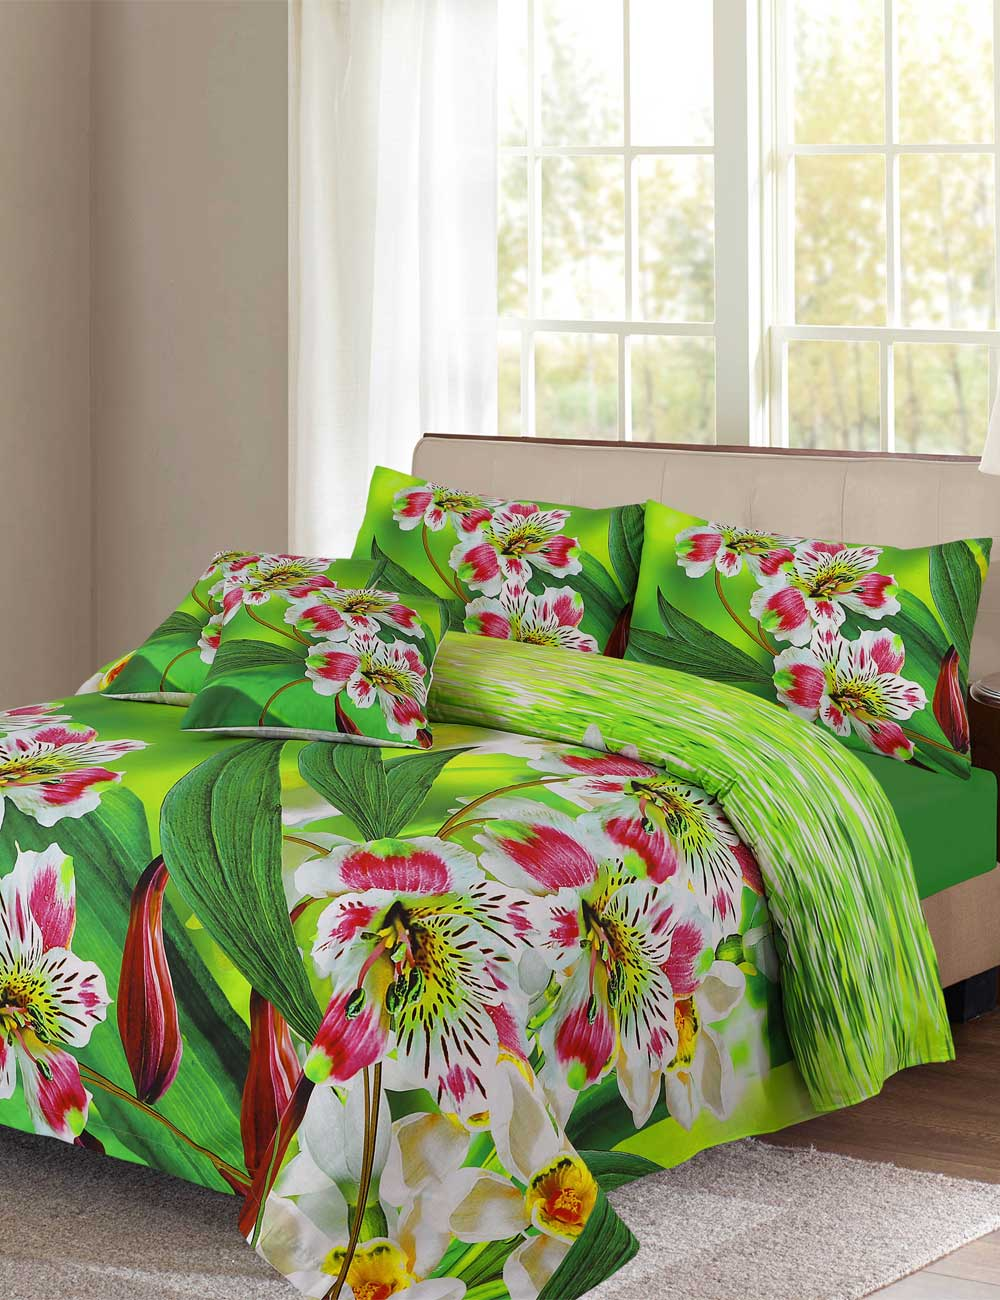 Lilly Flower Digital Printed 3D Bed Sheet Set